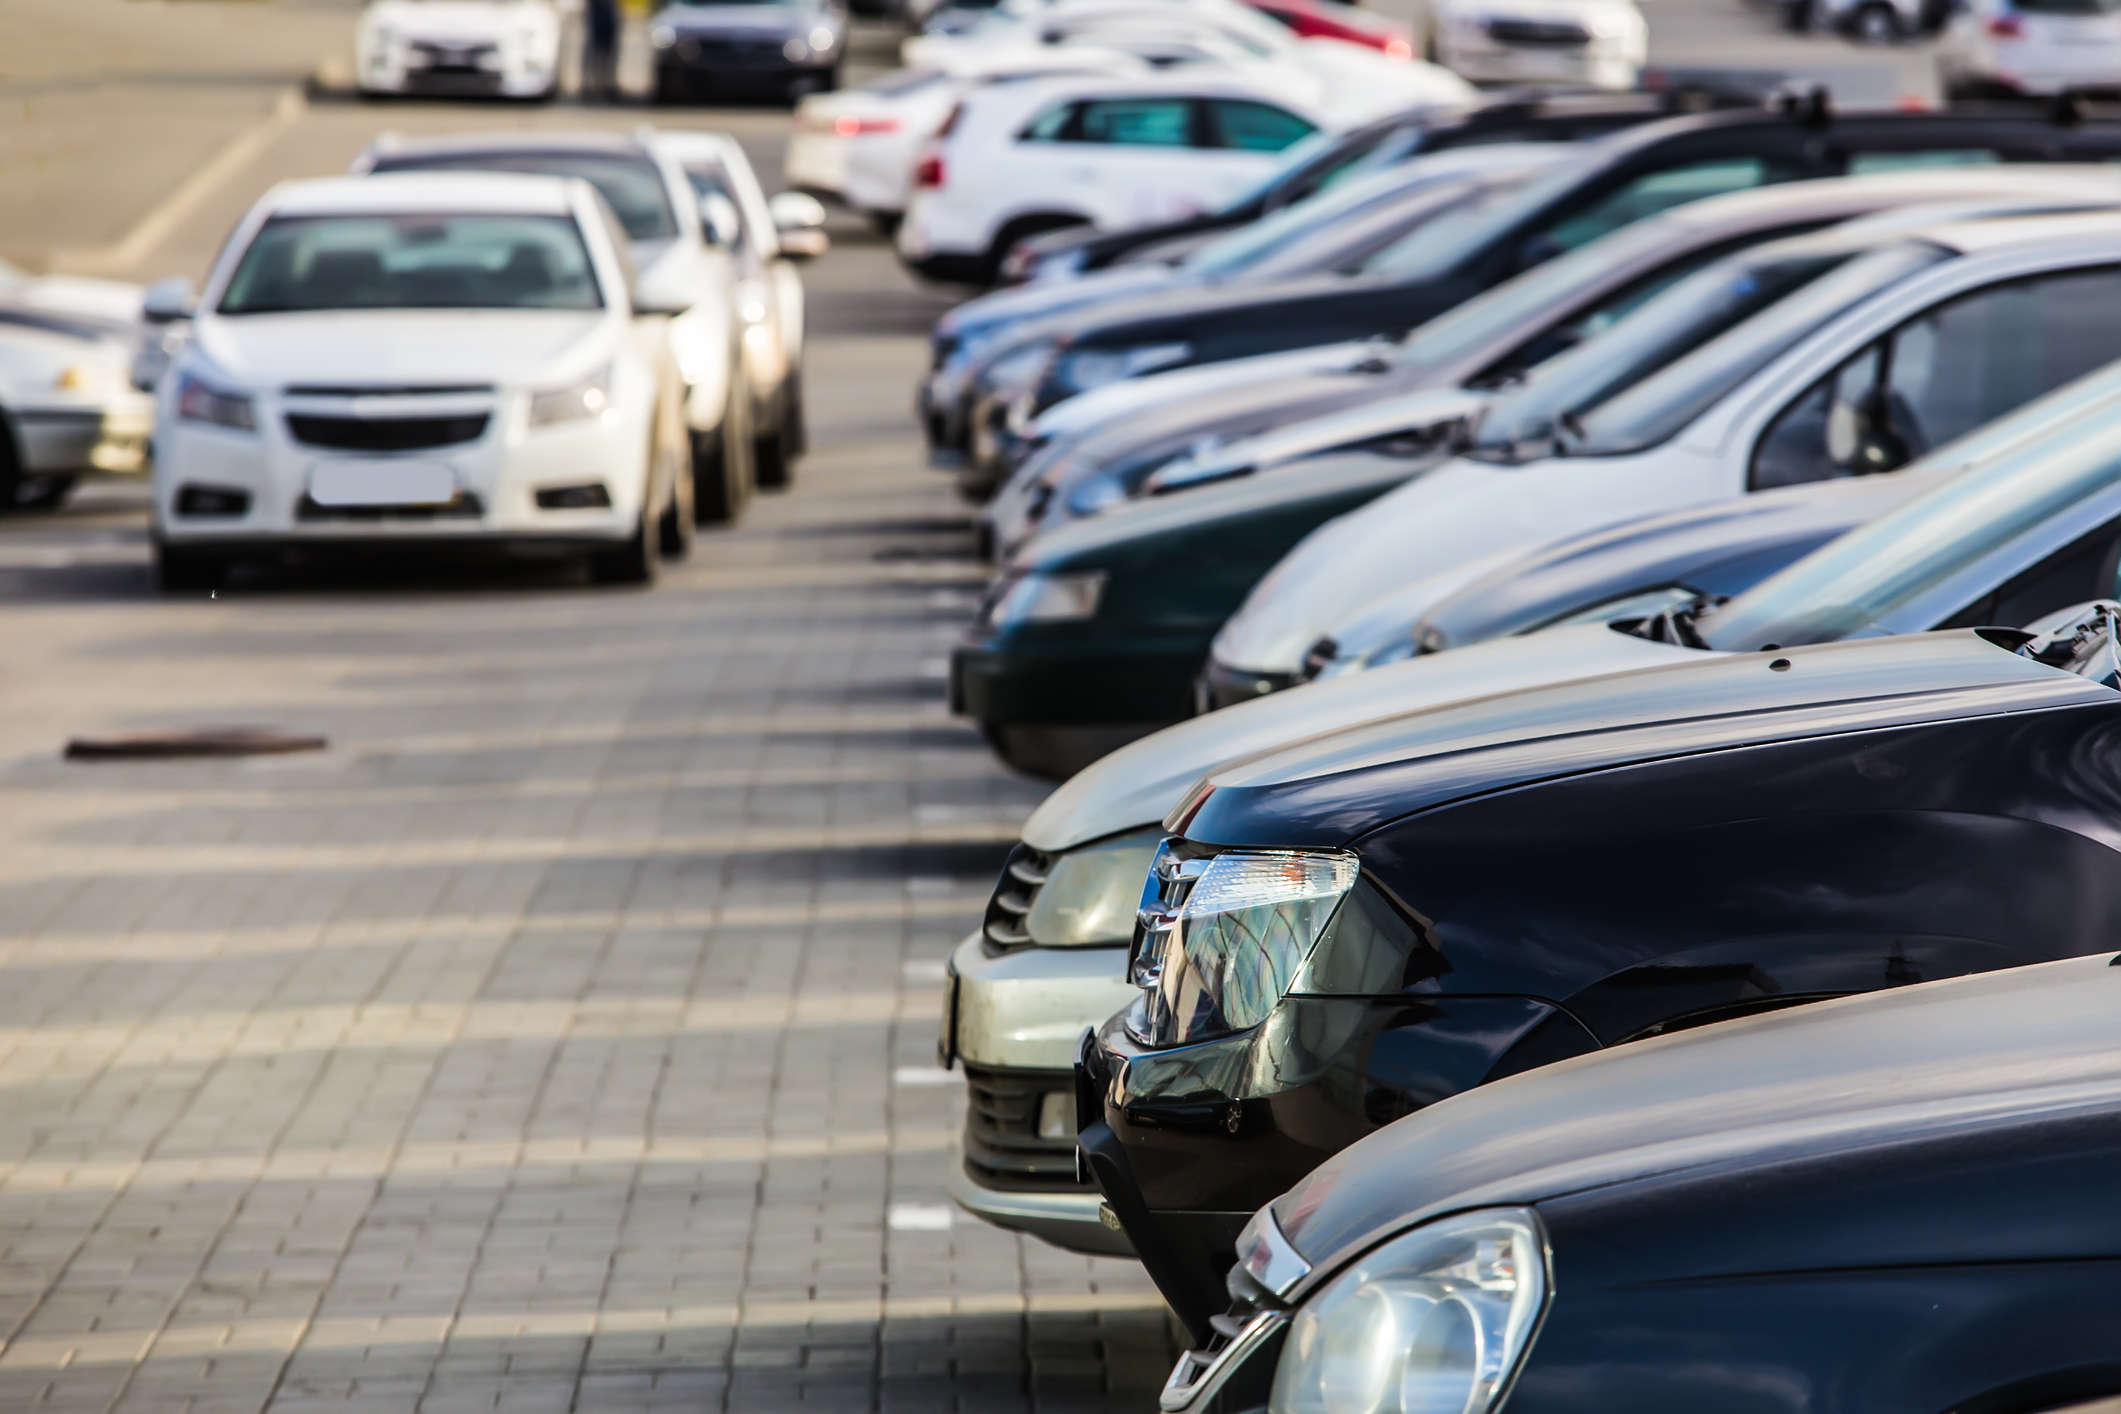 Analysts expect that car buyers may bounce back after an extended shutdown, which would help the auto industry to recover.